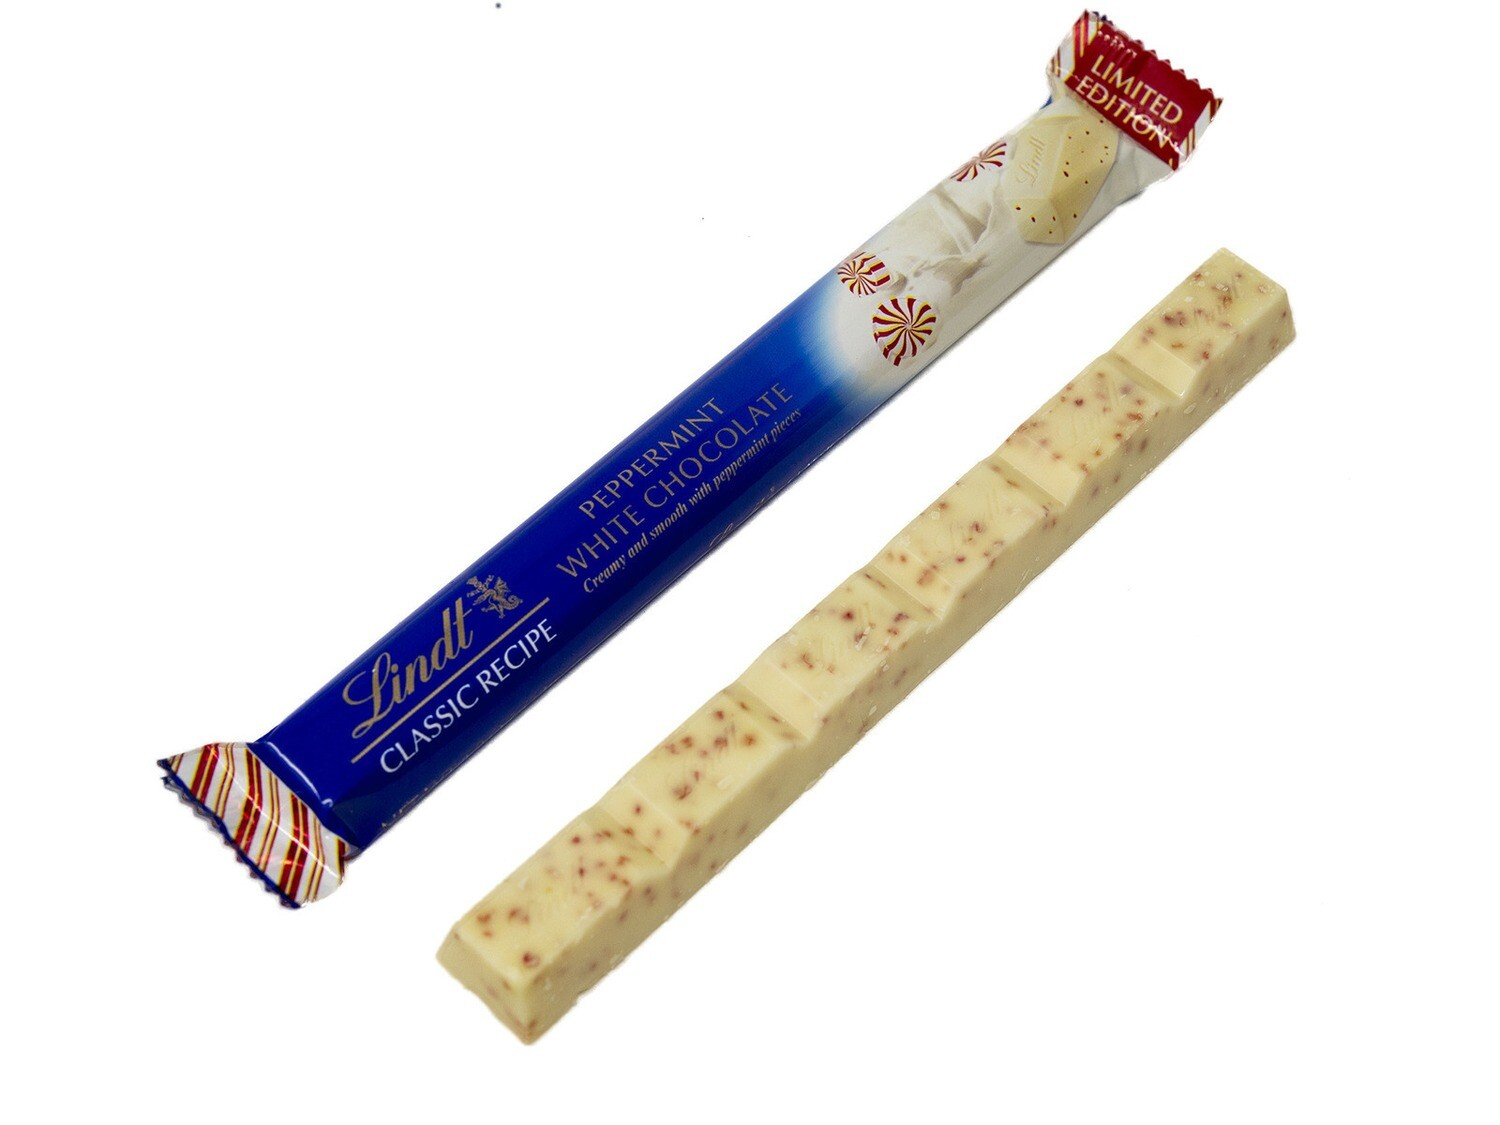 Lindt Peppermint White Chocolate Sticks